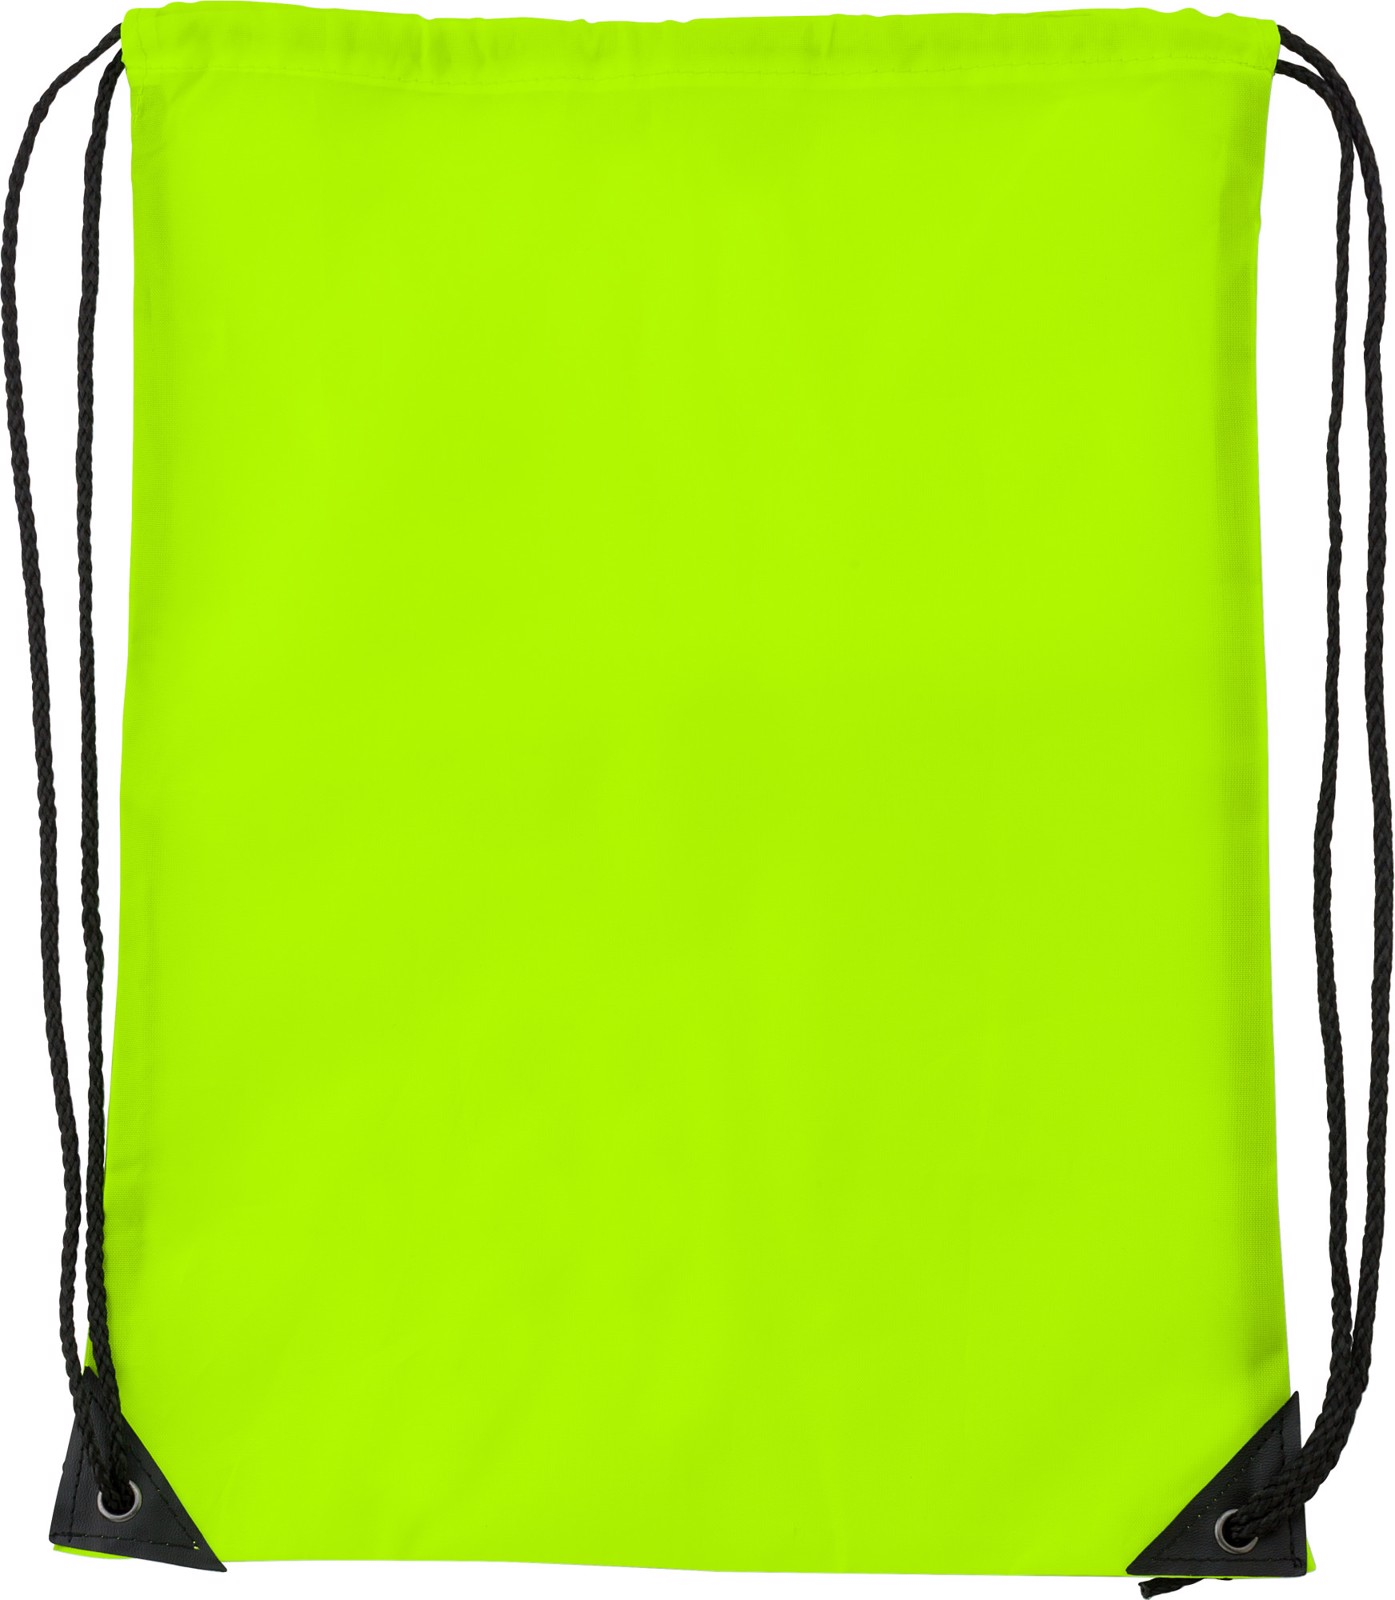 Polyester (210D) drawstring backpack - Fluor Yellow